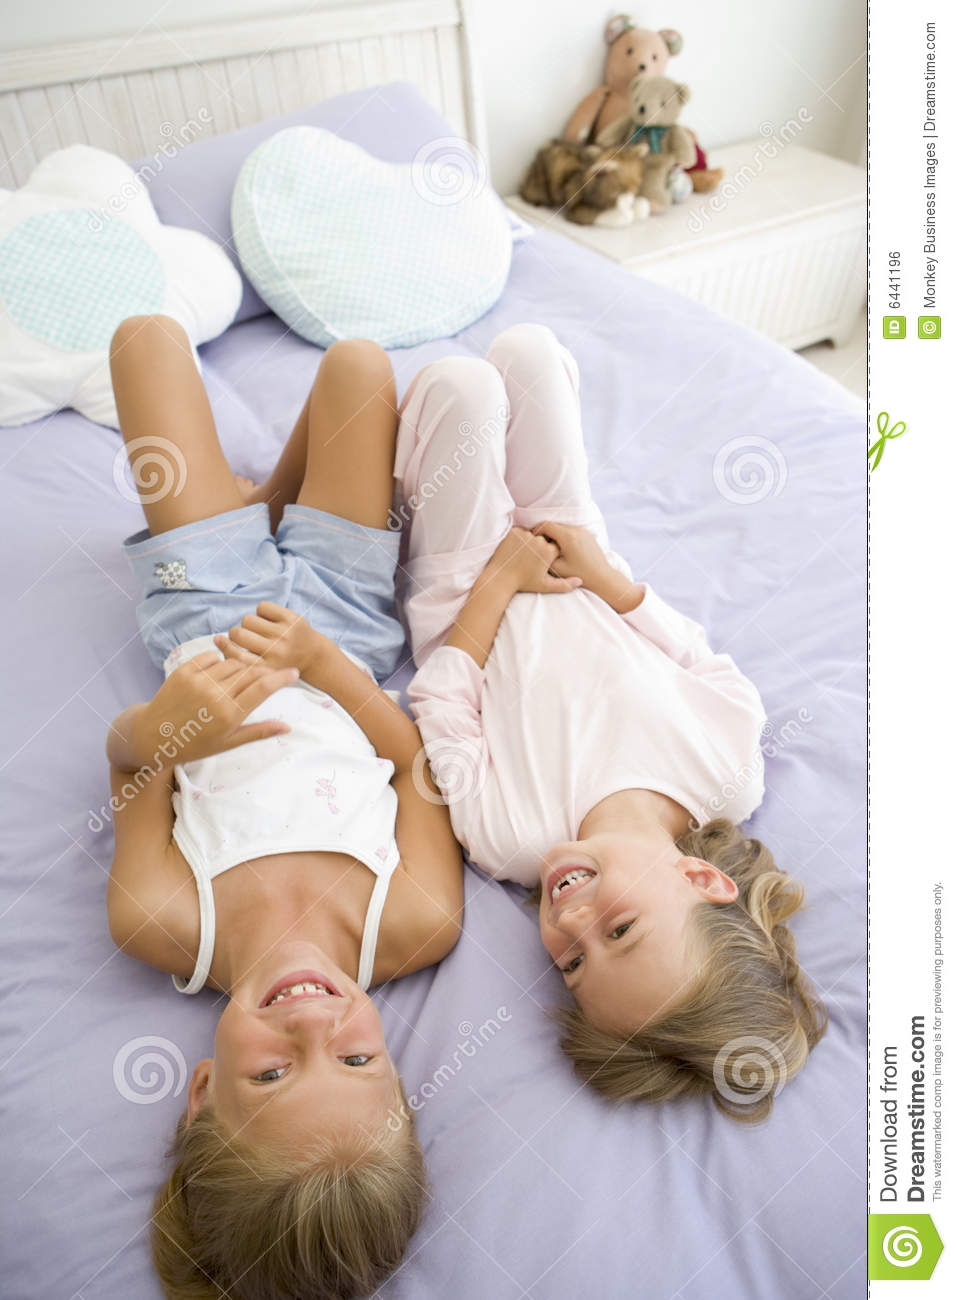 Two Young Girls In Their Pajamas Lying On A Bed Stock